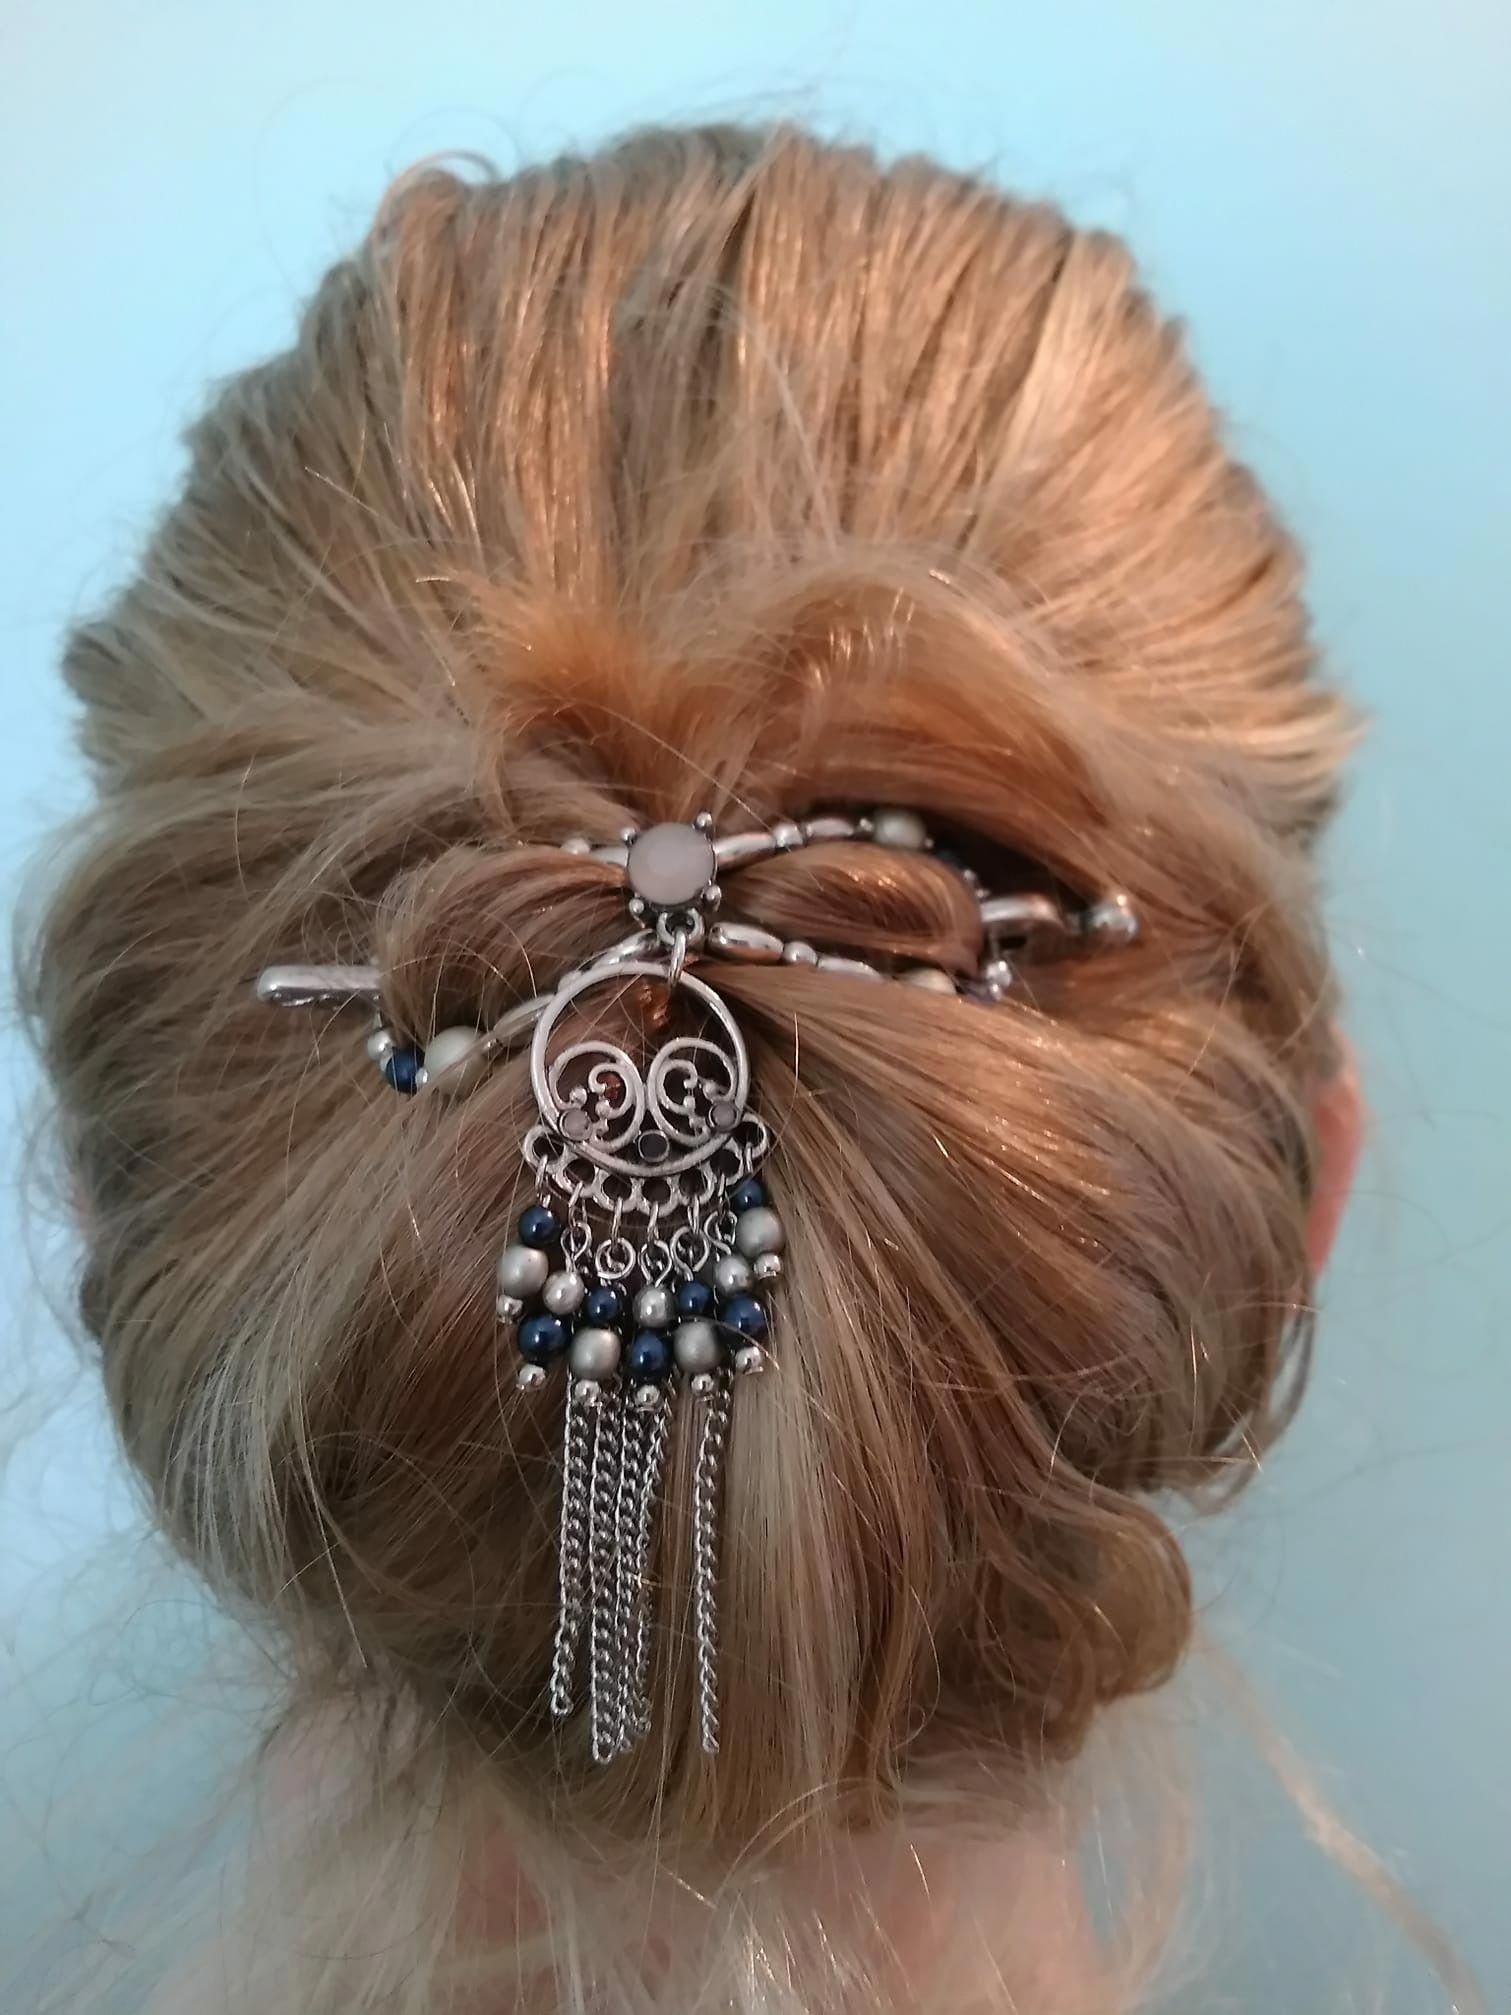 Latest Hairstyles 2016 Long Hair | Elegant Updo Hairstyles | How To Do Updos For Medium Length Hair 20191021 #1920slonghair Latest Hairstyles 2016 Long Hair | Elegant Updo Hairstyles | How To Do Updos For Medium Length Hair 20191021 #1920slonghair Latest Hairstyles 2016 Long Hair | Elegant Updo Hairstyles | How To Do Updos For Medium Length Hair 20191021 #1920slonghair Latest Hairstyles 2016 Long Hair | Elegant Updo Hairstyles | How To Do Updos For Medium Length Hair 20191021 #1920shairstyles